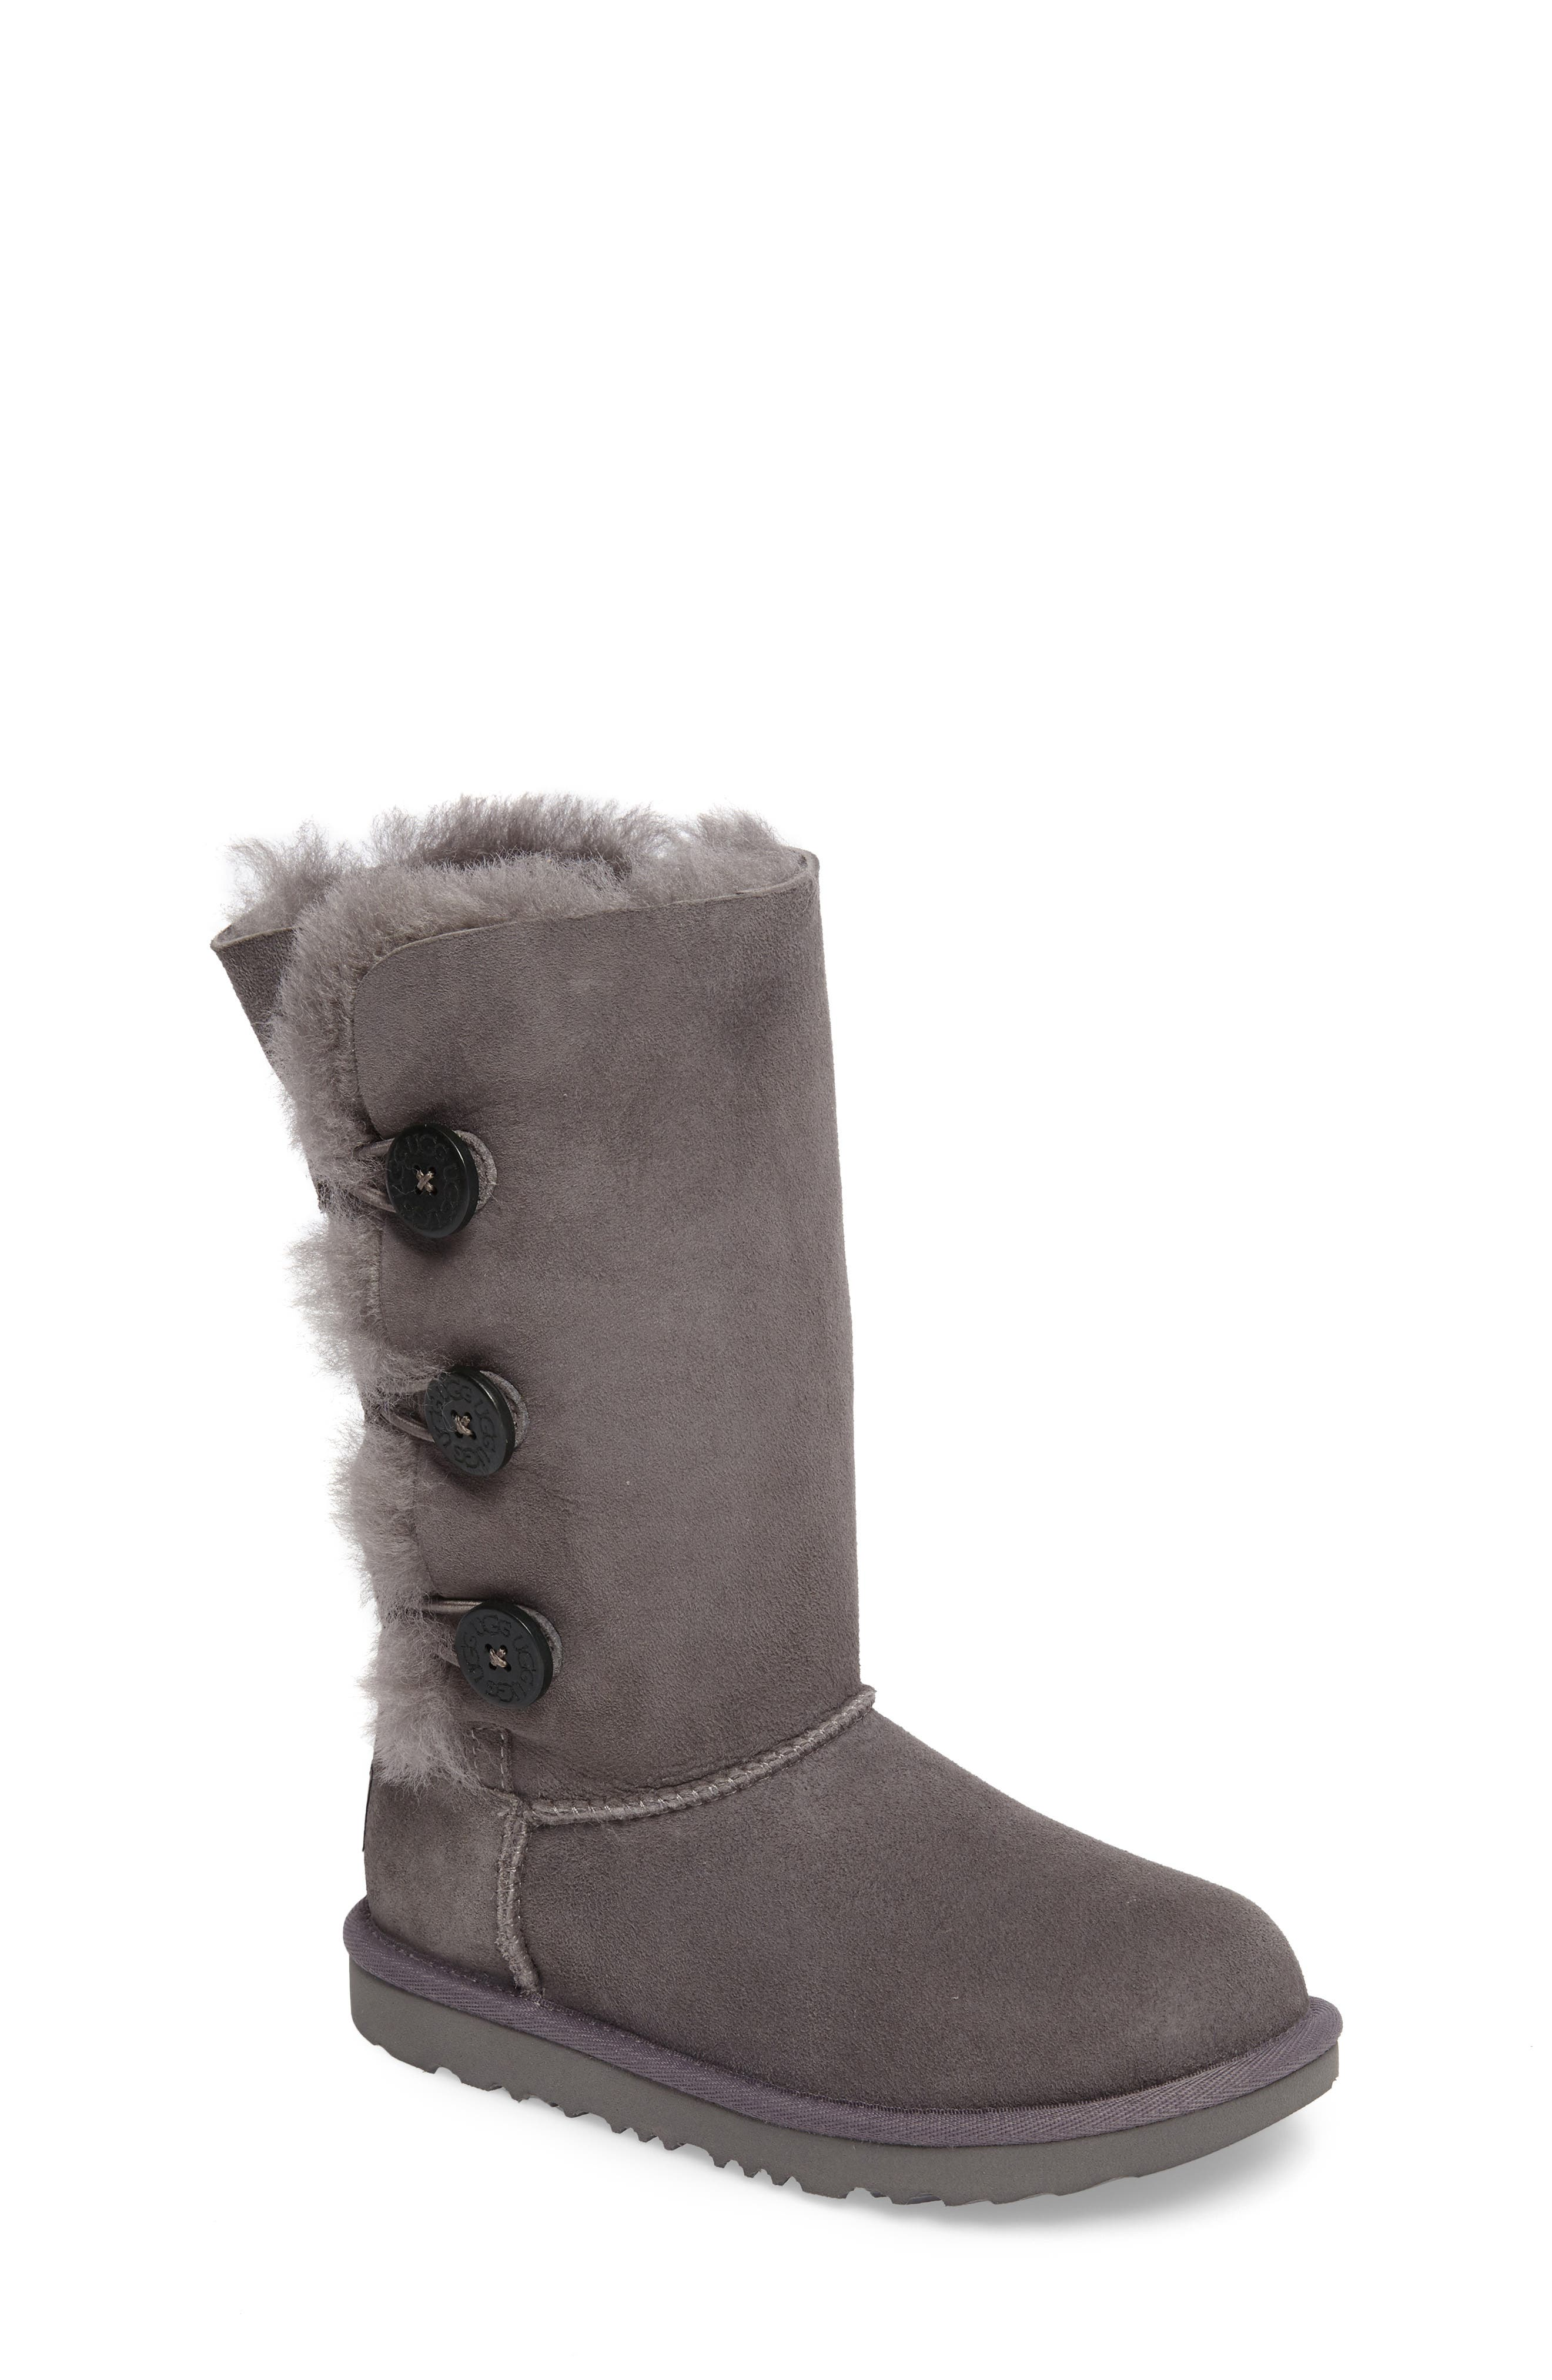 Main Image - UGG® Bailey Button Triplet II Genuine Shearling Boot (Little Kid & Big Kid)